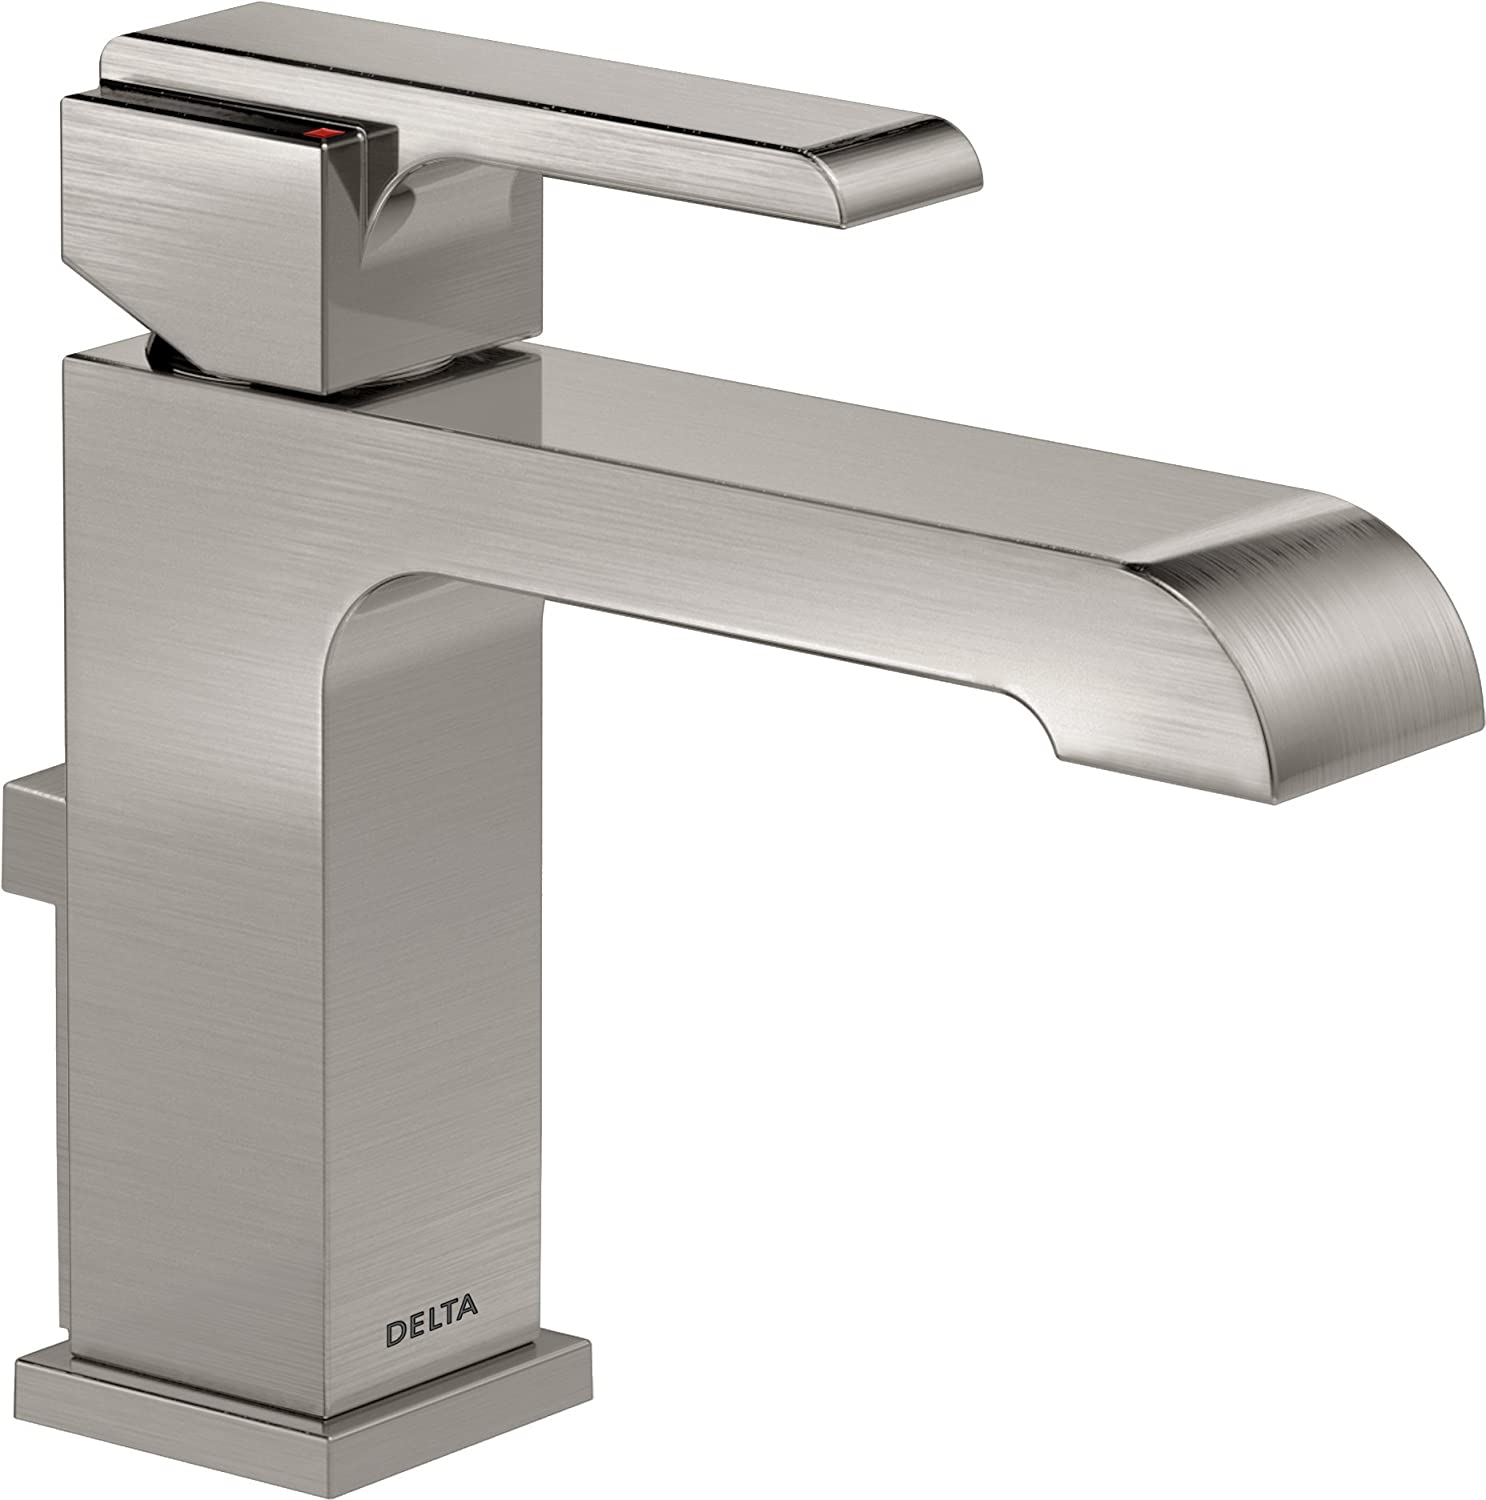 White bathroom faucet - Delta Faucet 567lf Ssmpu Ara Single Handle Bathroom Faucet Stainless Amazon Com